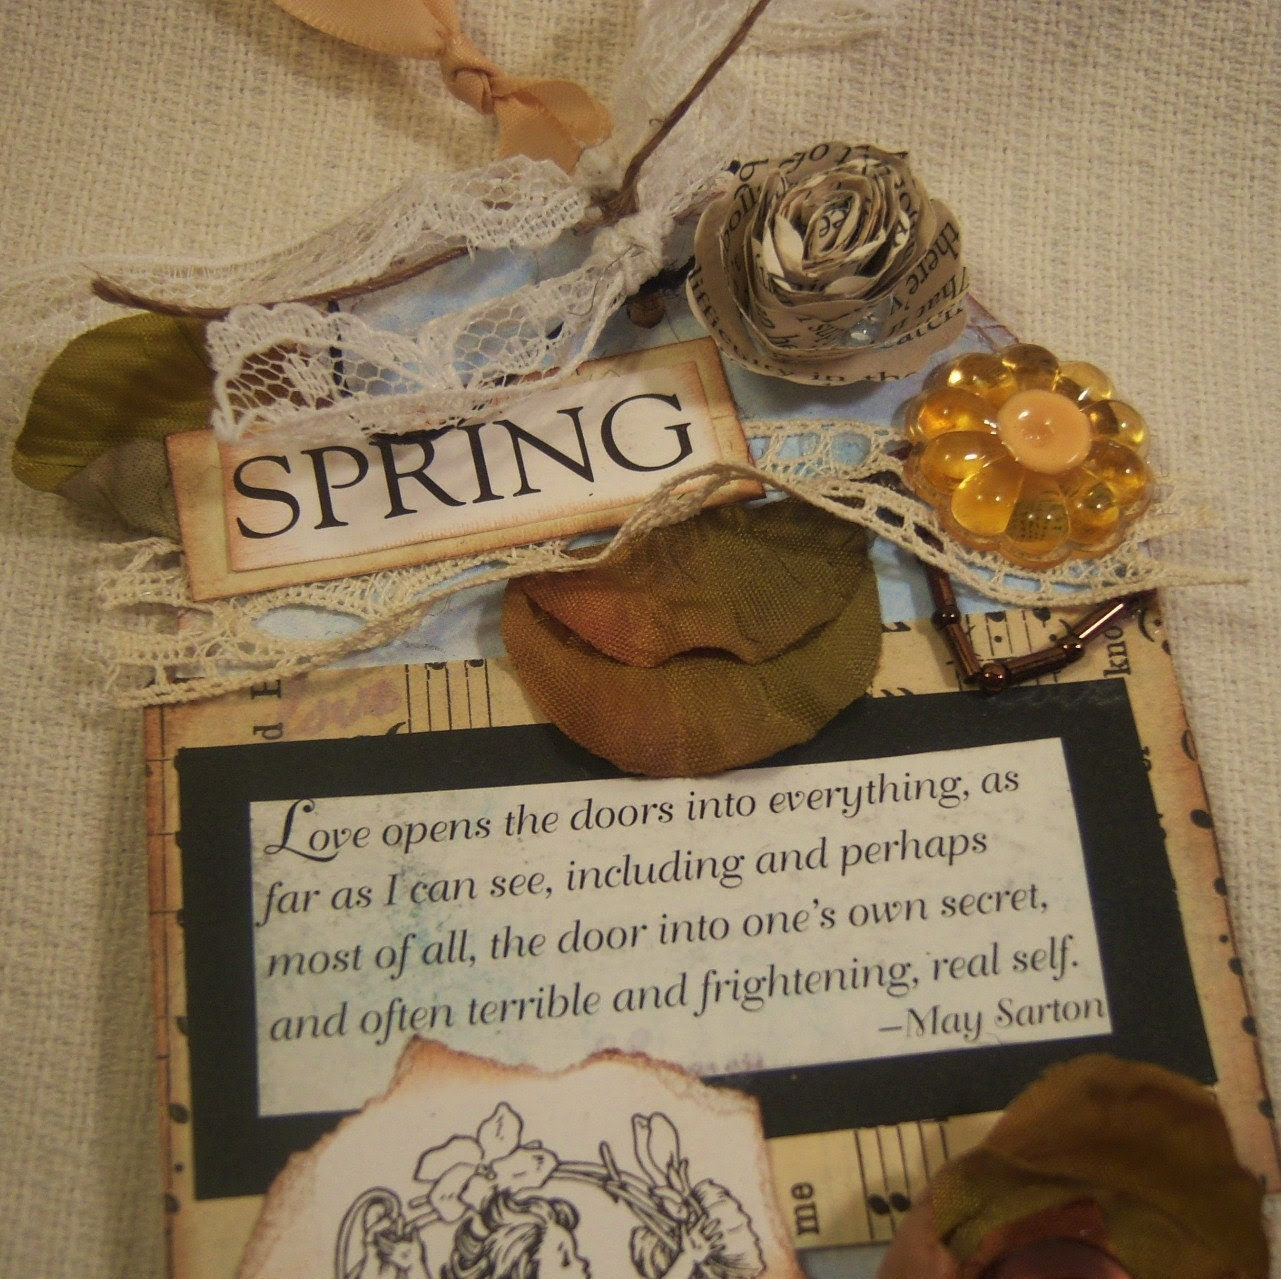 Sewn Shabby Vintage Hang Tag Spring Fairies Lace Details Embellishments